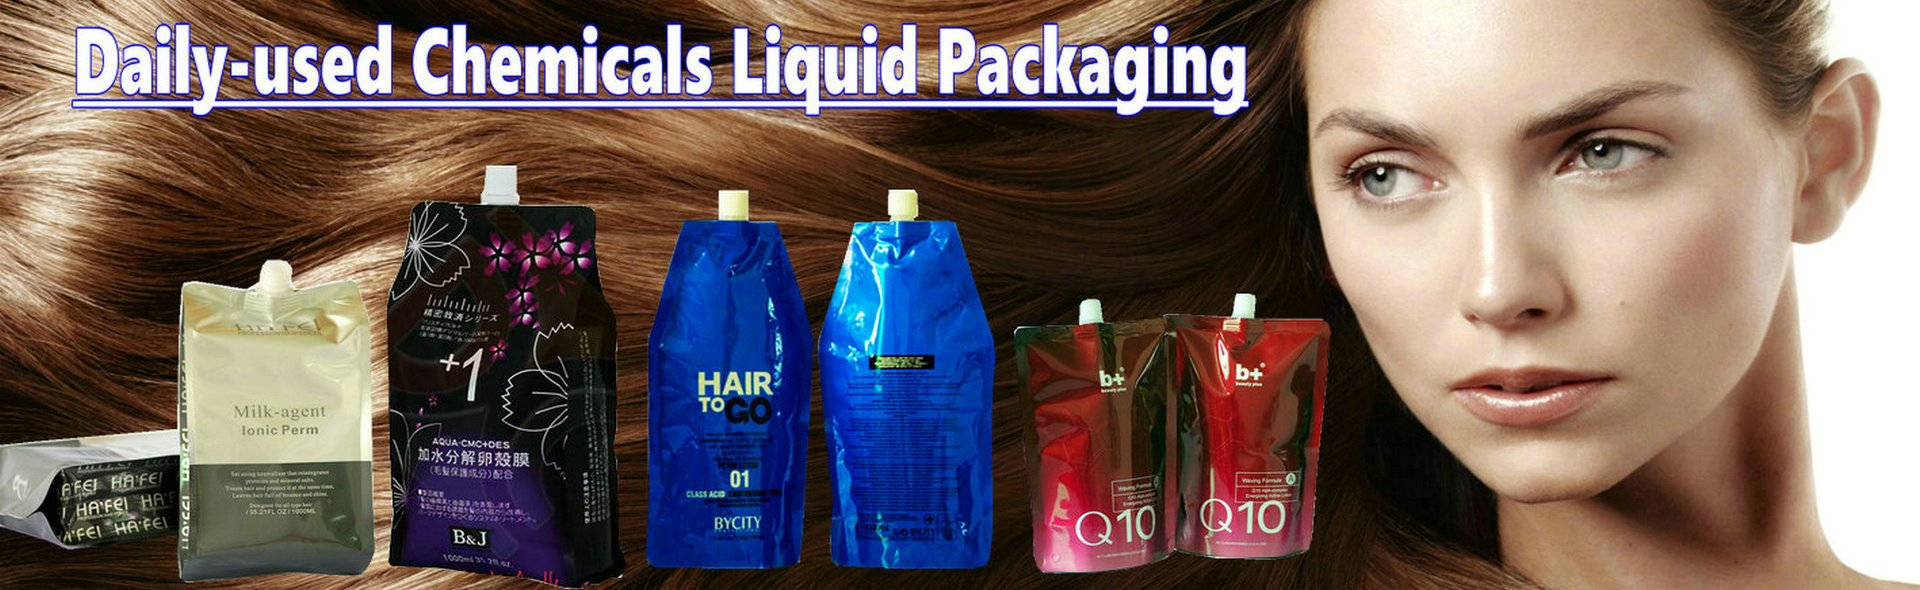 chemical liquid packaging banner2